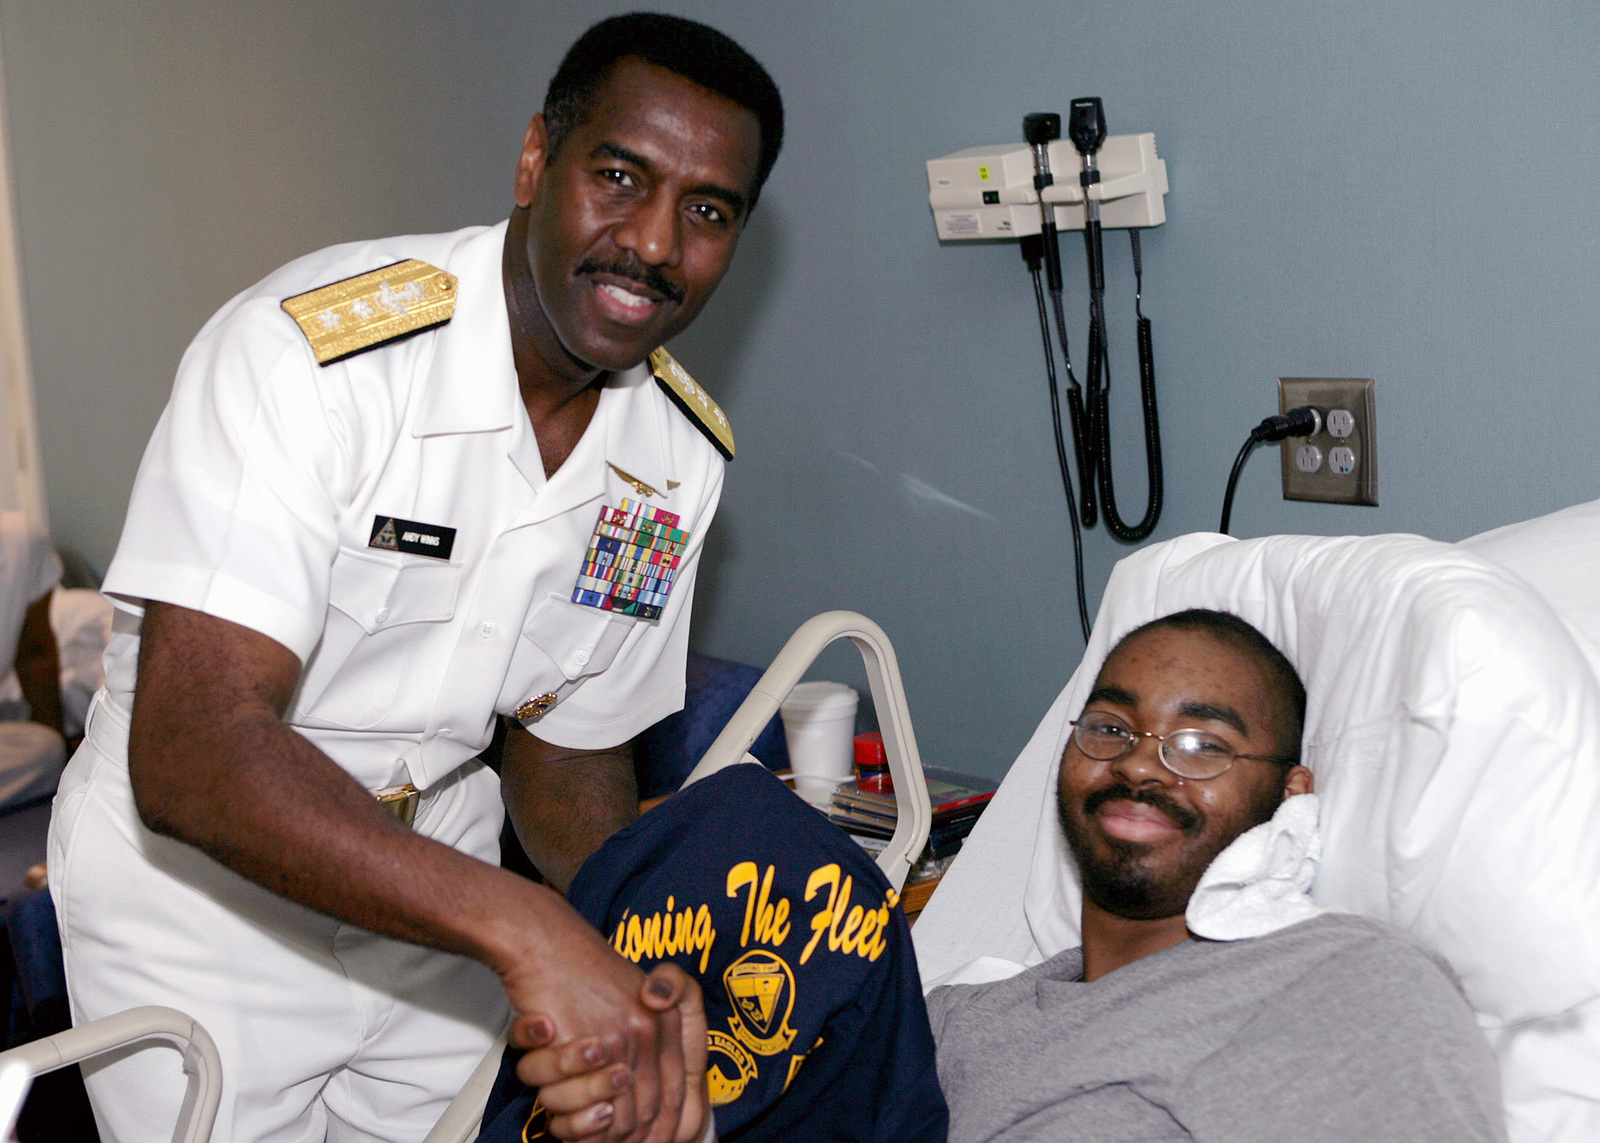 """US Navy (USN) Rear Admiral (RADM) Anthony Winns, Vice Director for Operations Joint CHIEF of STAFF, gives a Navy T-shirt to a youth at the Children's Hospital in Atlanta, Georgia (GA). RADM Winns participated in the """"Caps for Kids"""" program during his visit to Atlanta for the Navy Week 2006. Twenty such weeks arranged by the Navy Office of Community Outreach are planned this year in cities throughout the Country"""